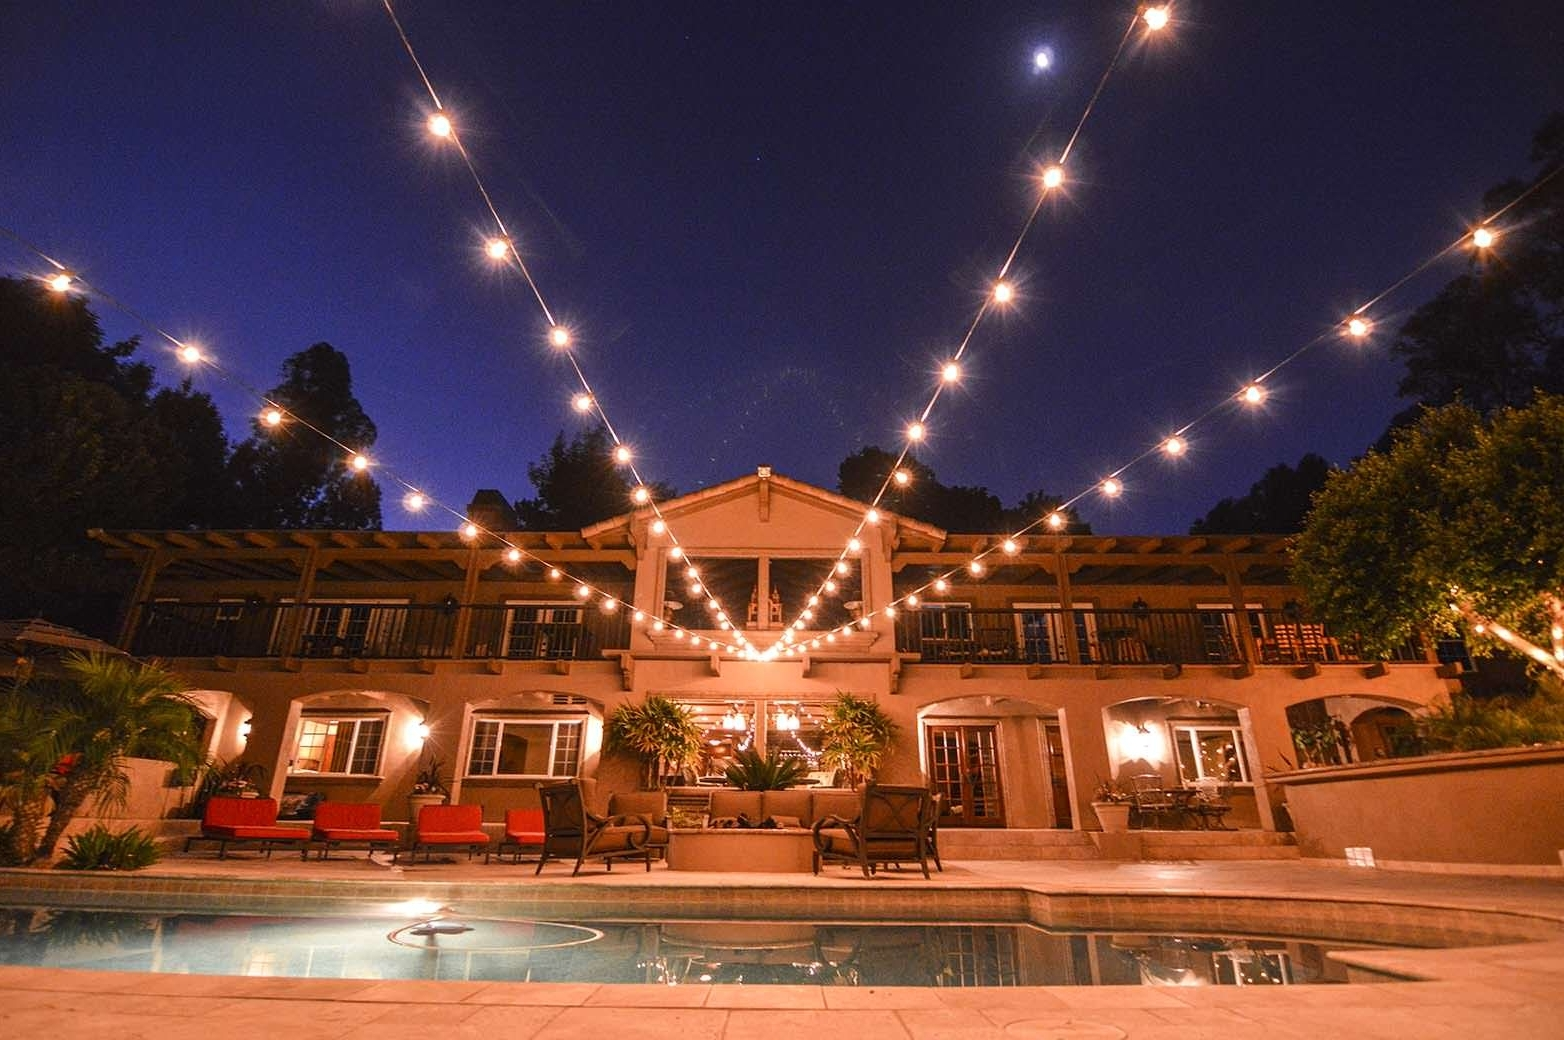 Widely Used Hanging Outdoor Lights For A Party Regarding Market Lights, Party, Globe & Patio String Lights Outdoor (View 20 of 20)